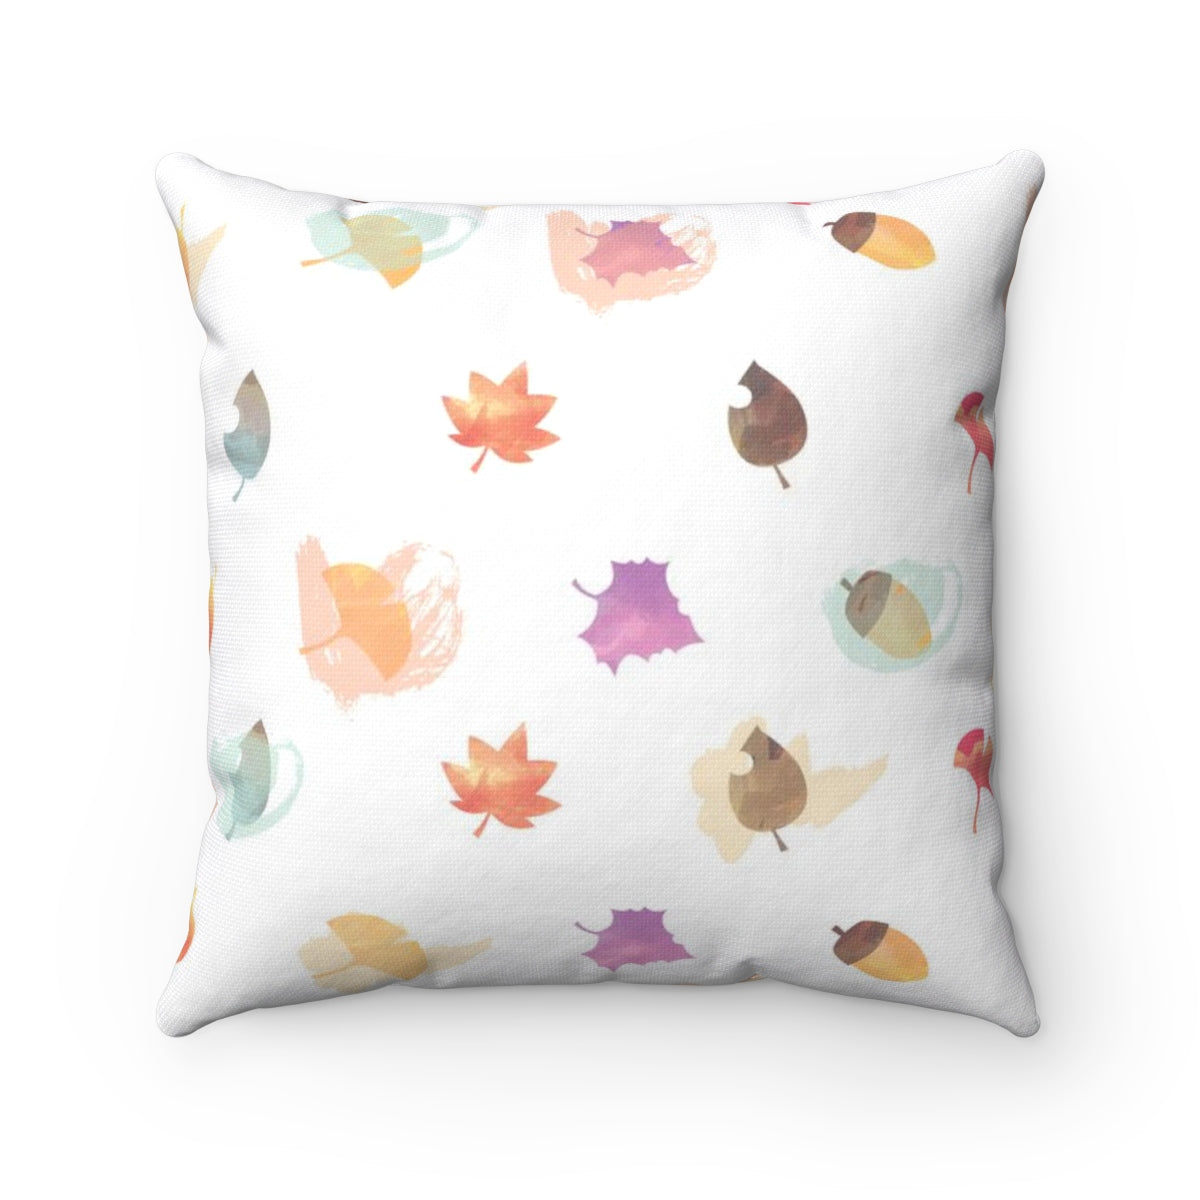 It's Fall Ya'll Spun Polyester Square Pillow Case